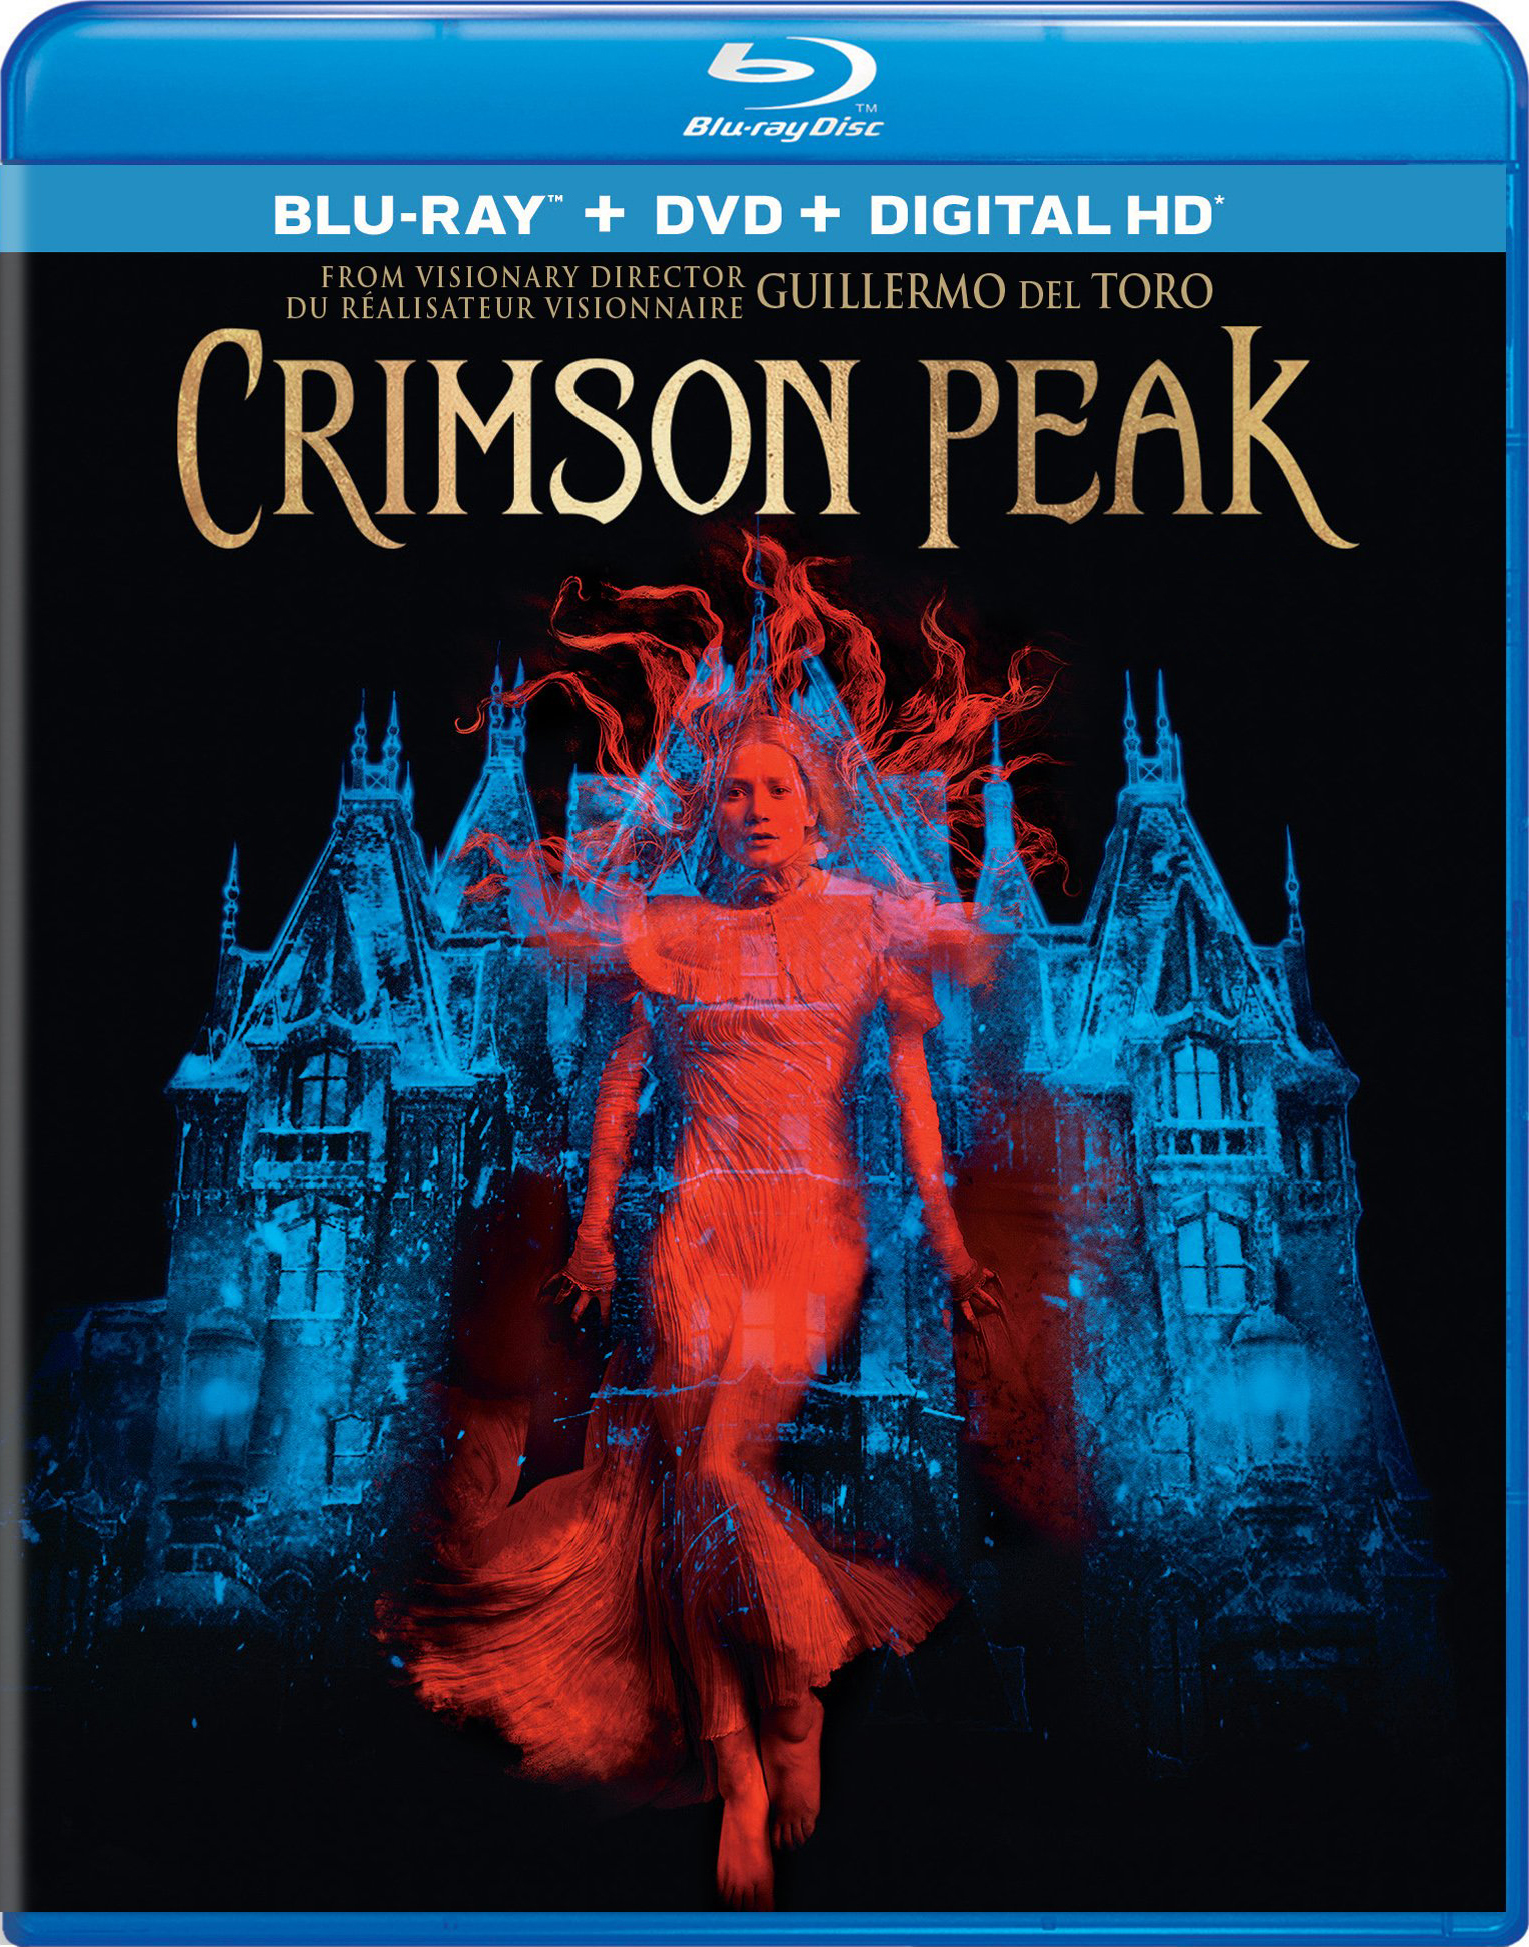 Crimson Peak (2015) Blu-ray